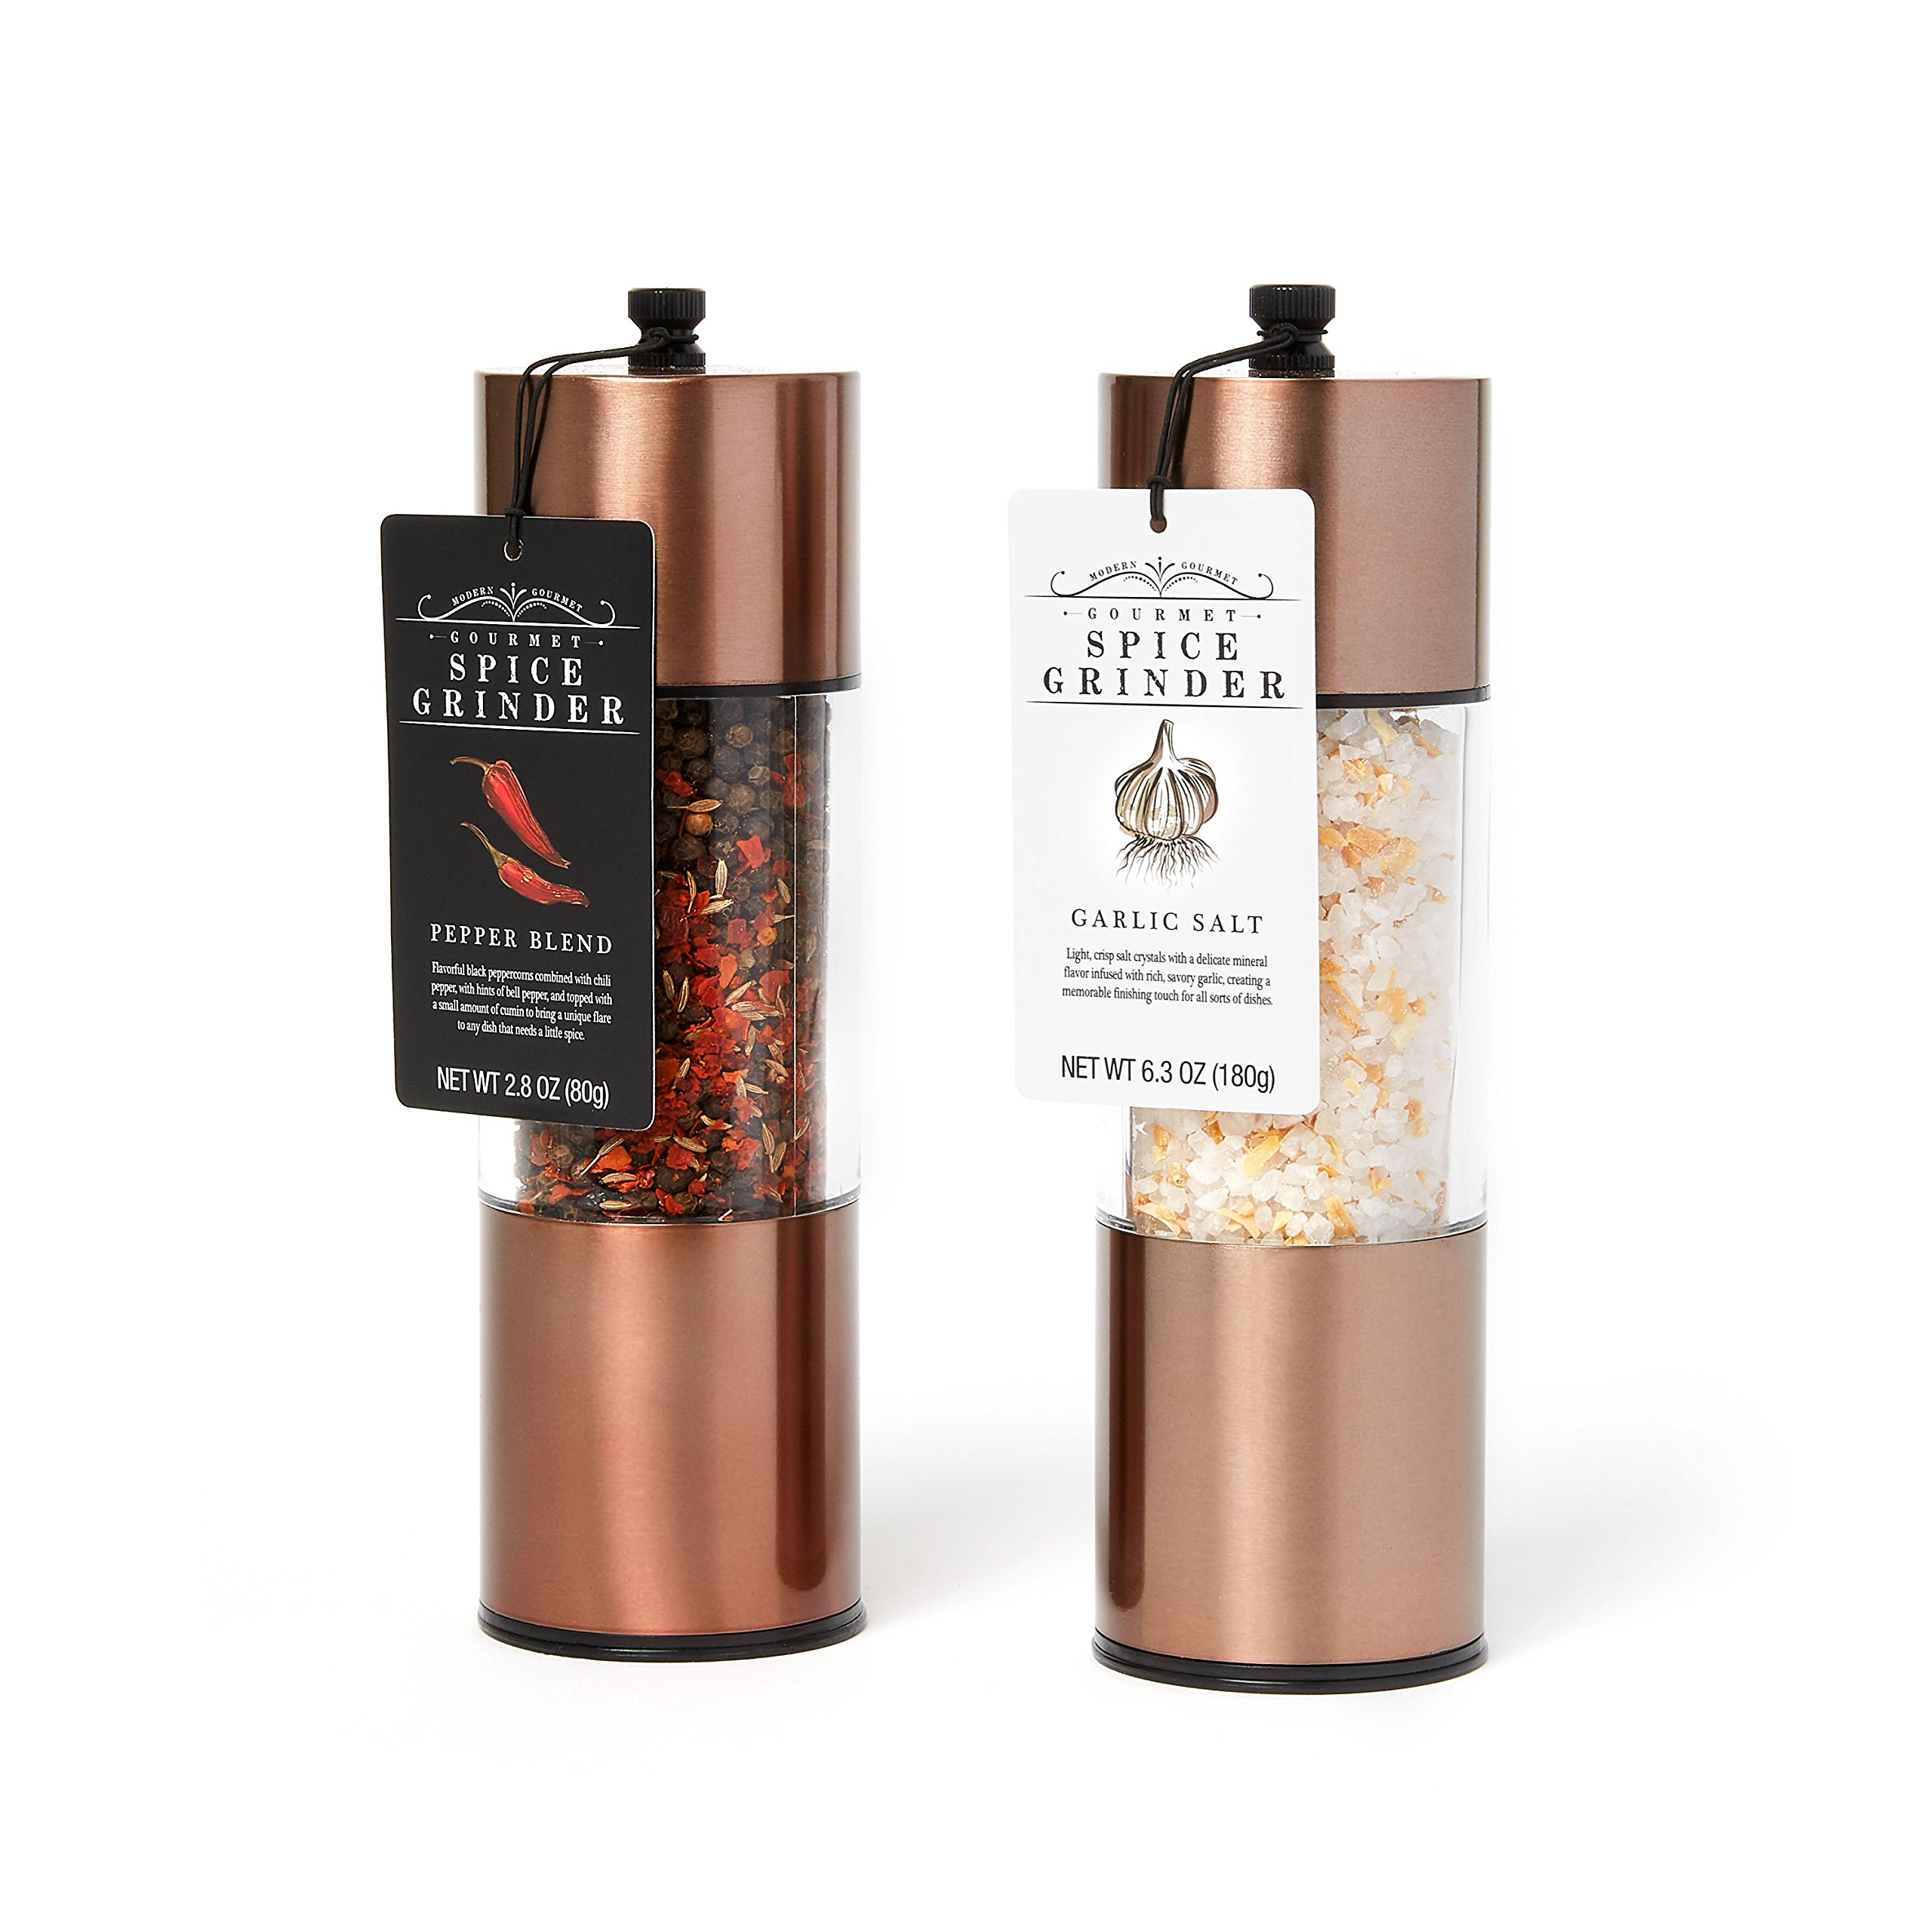 Extra Large Garlic Salt and Pepper Blend Copper Spice Grinders: A Great Copper Kitchen Accessory for the Home Chef who wants the Highest Quality and Best Ingredients by Modern Gourmet Foods (Image #1)